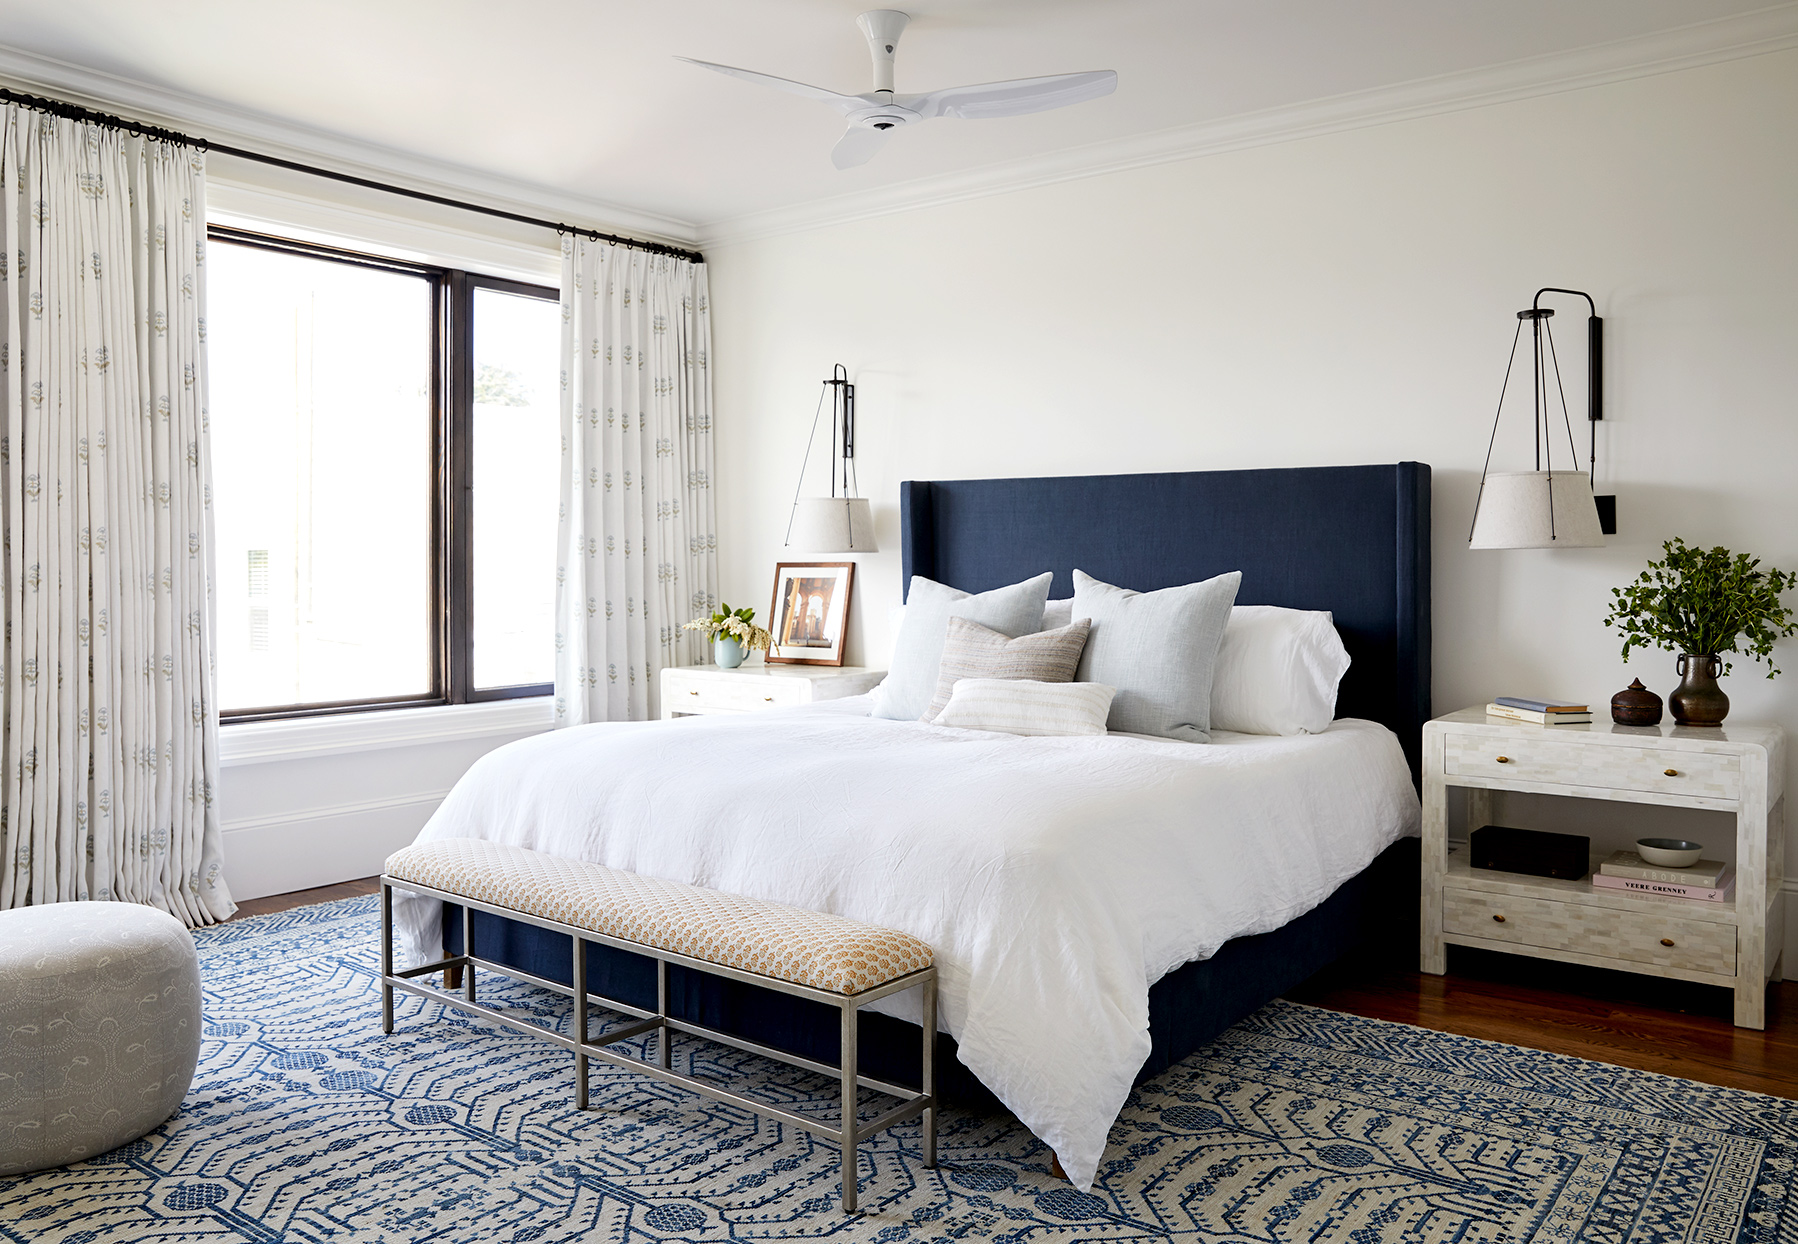 Bedroom with dark blue headboard and white comforter